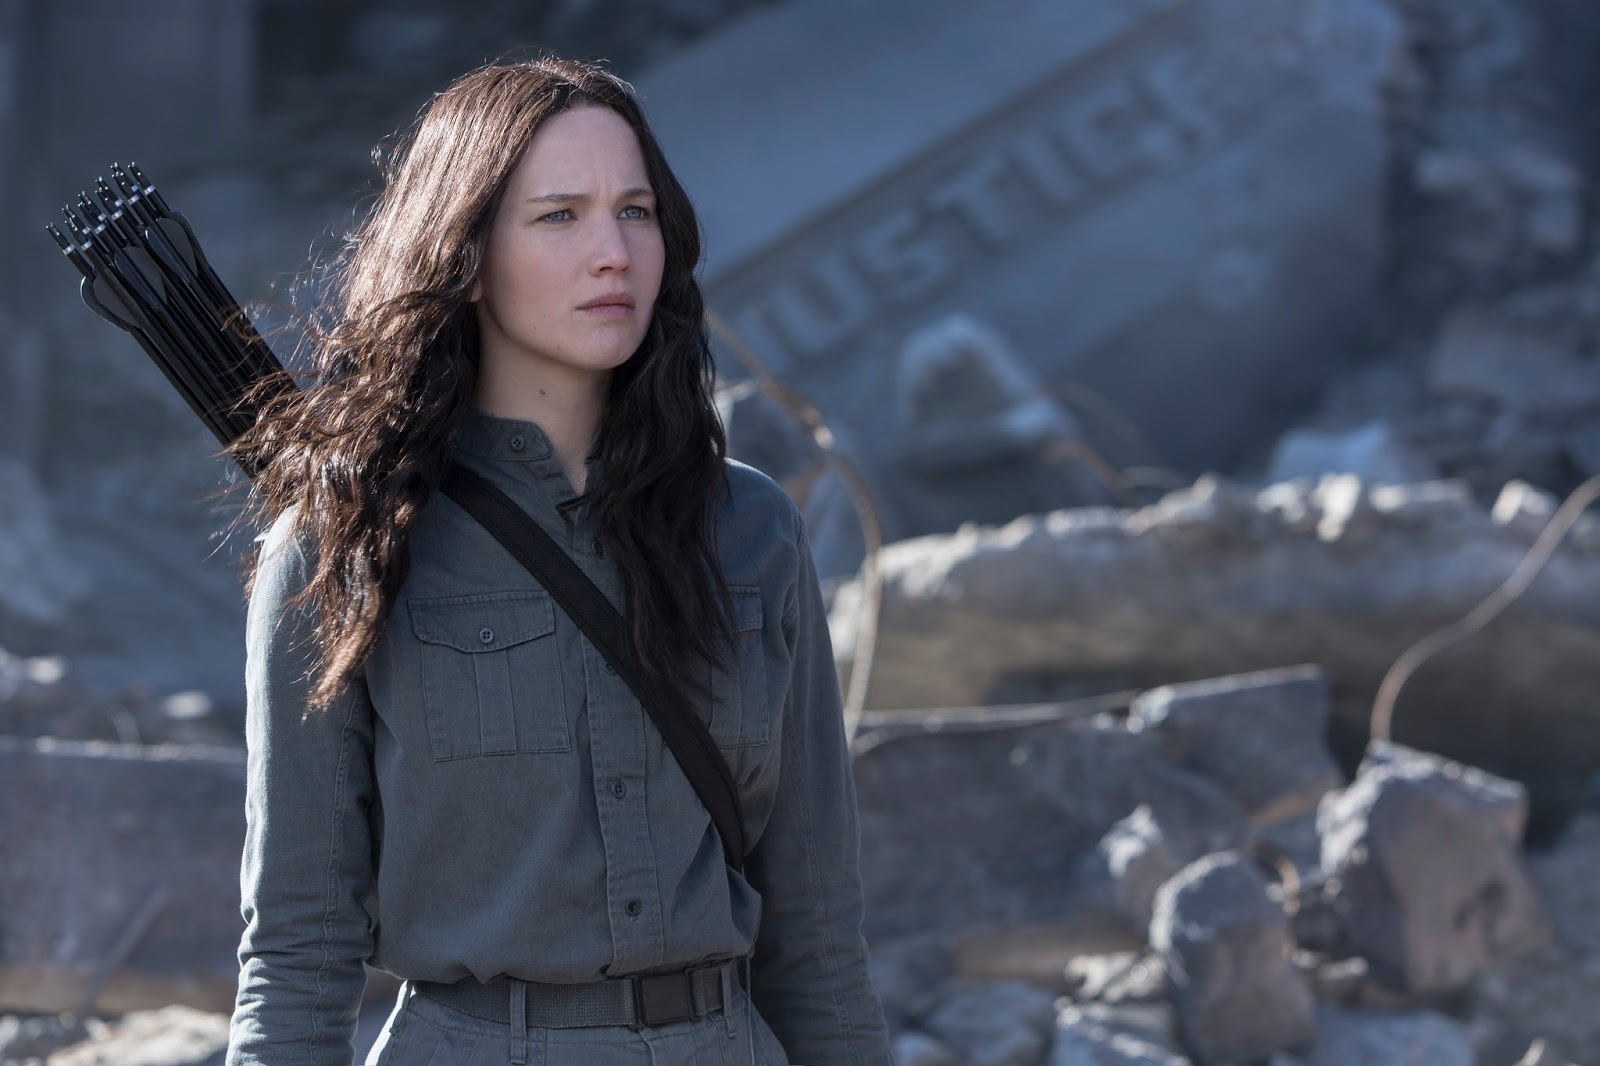 ... The Hunger Games: Mockingjay Part 1' Show Haymitch, Katniss, Boggs